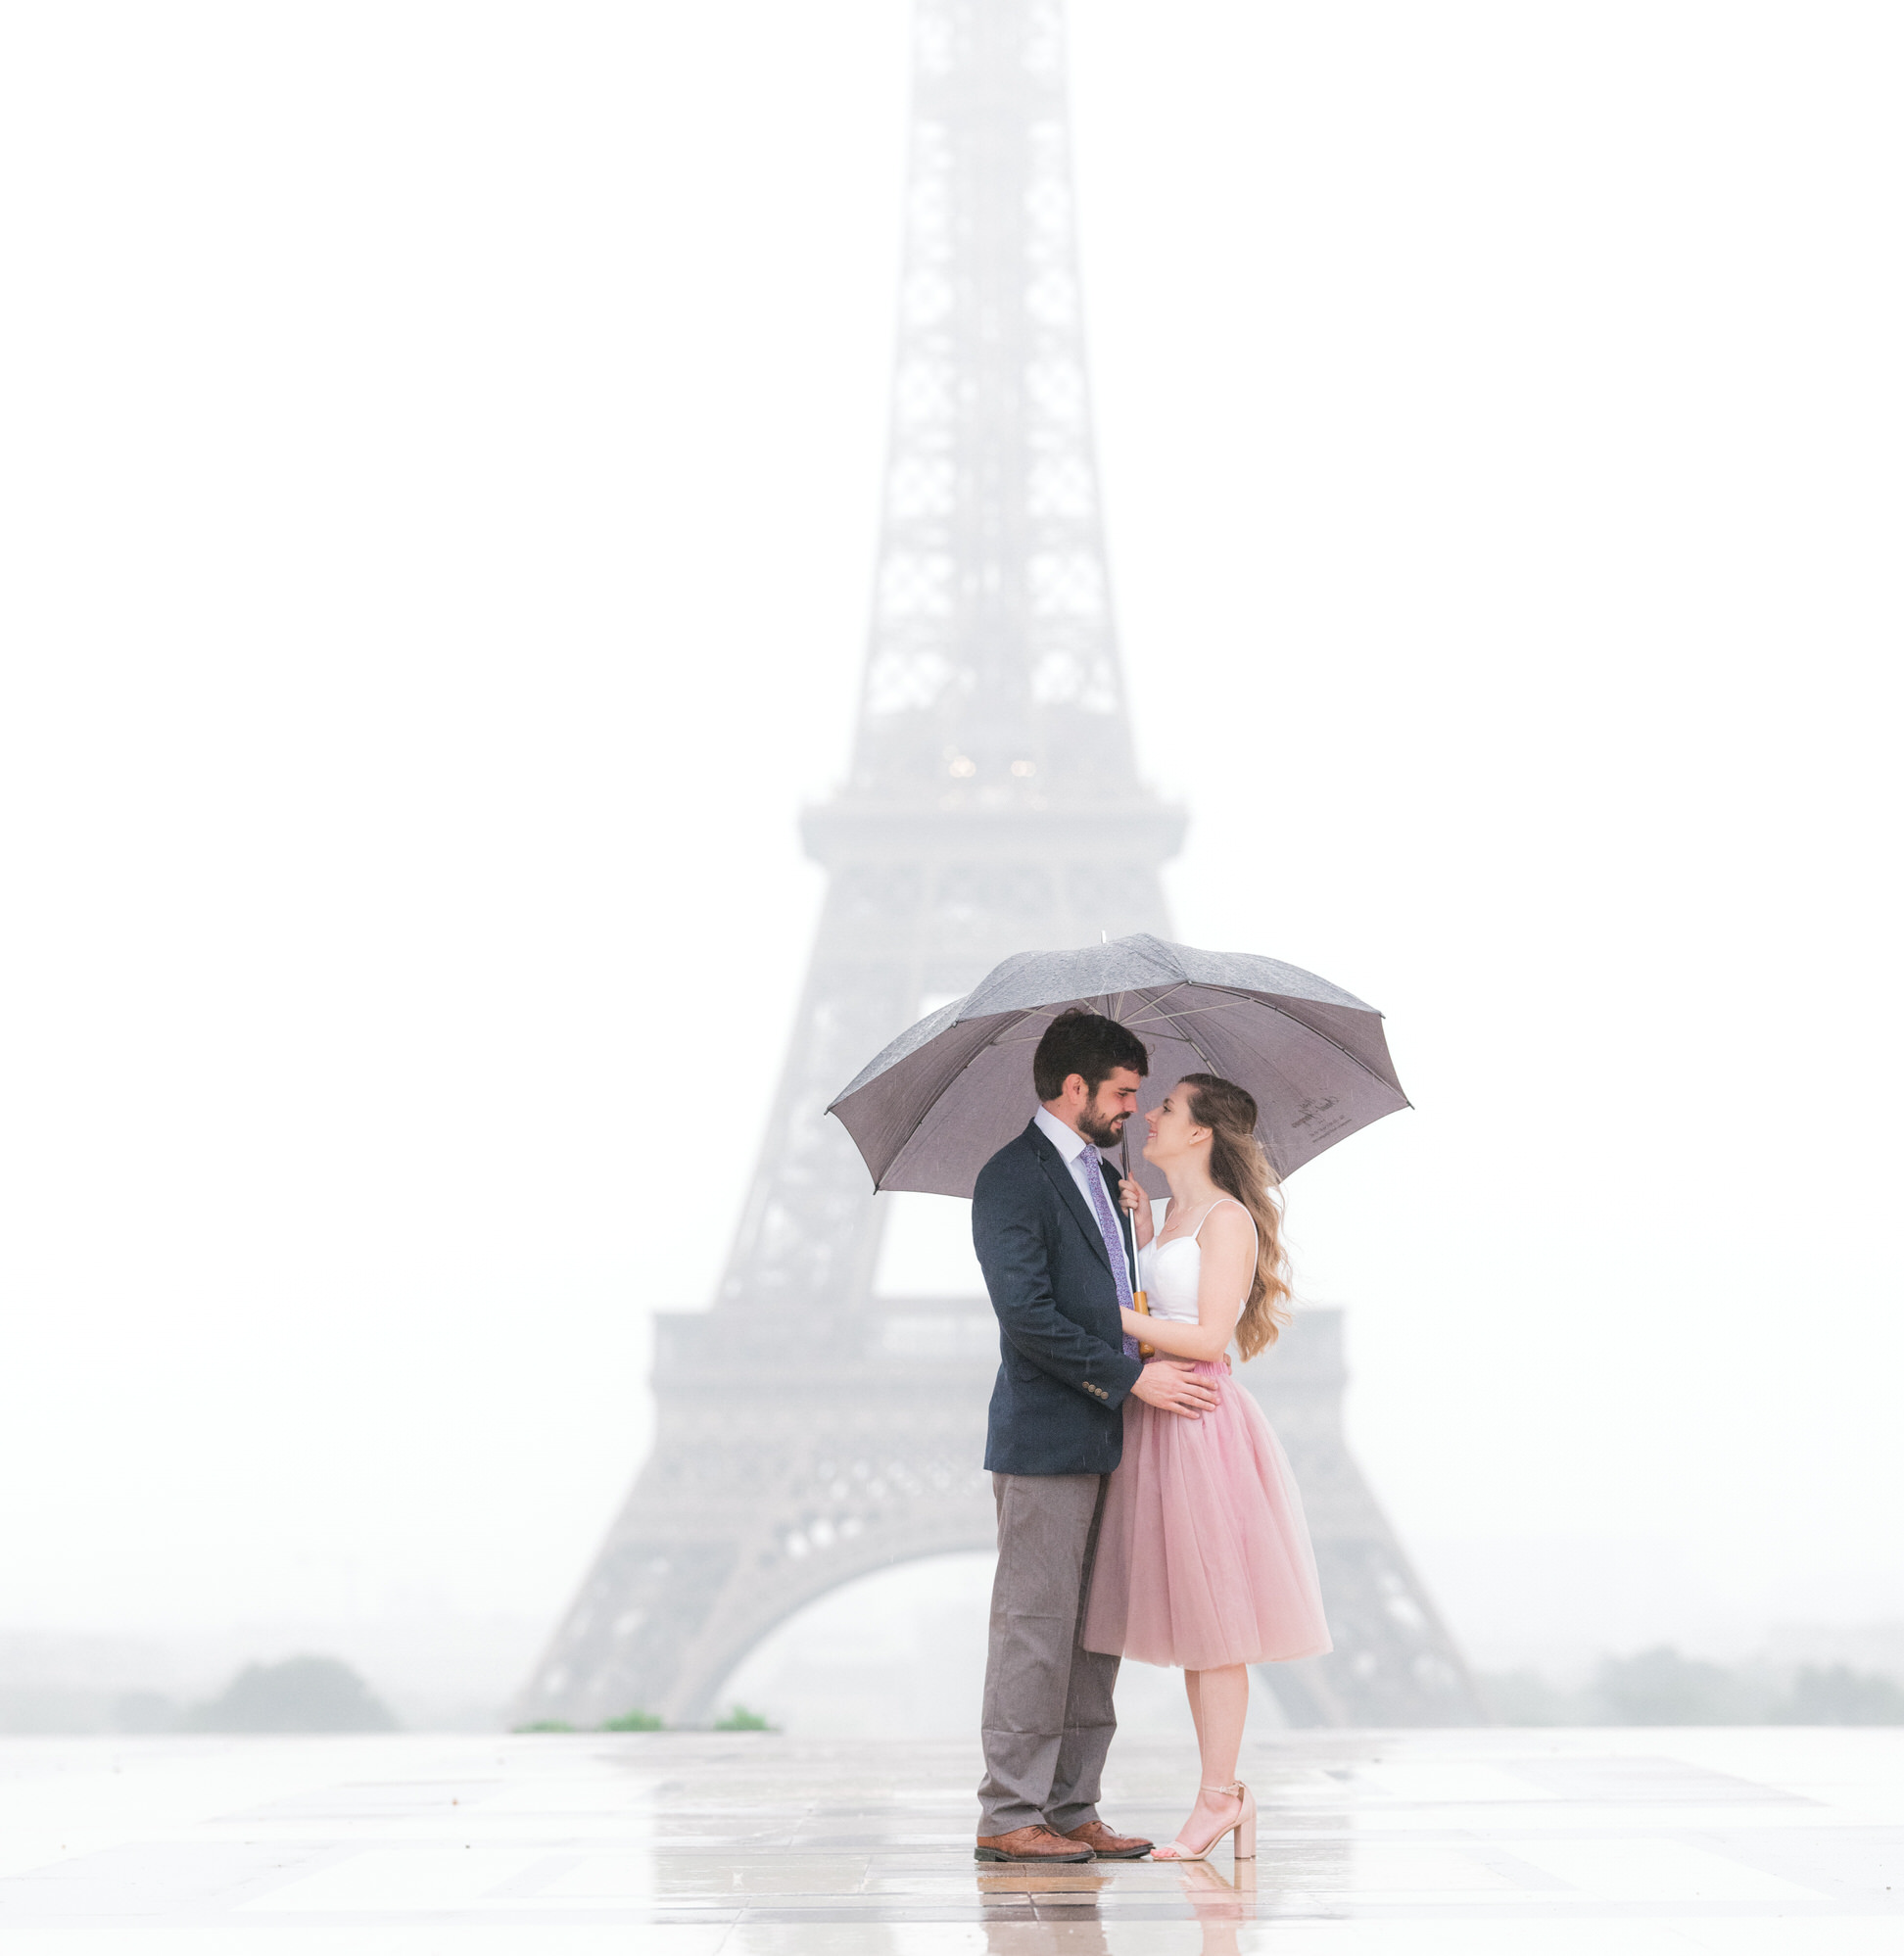 Dreamy, romantic Paris photo shoot at the Eiffel Tower in the rain